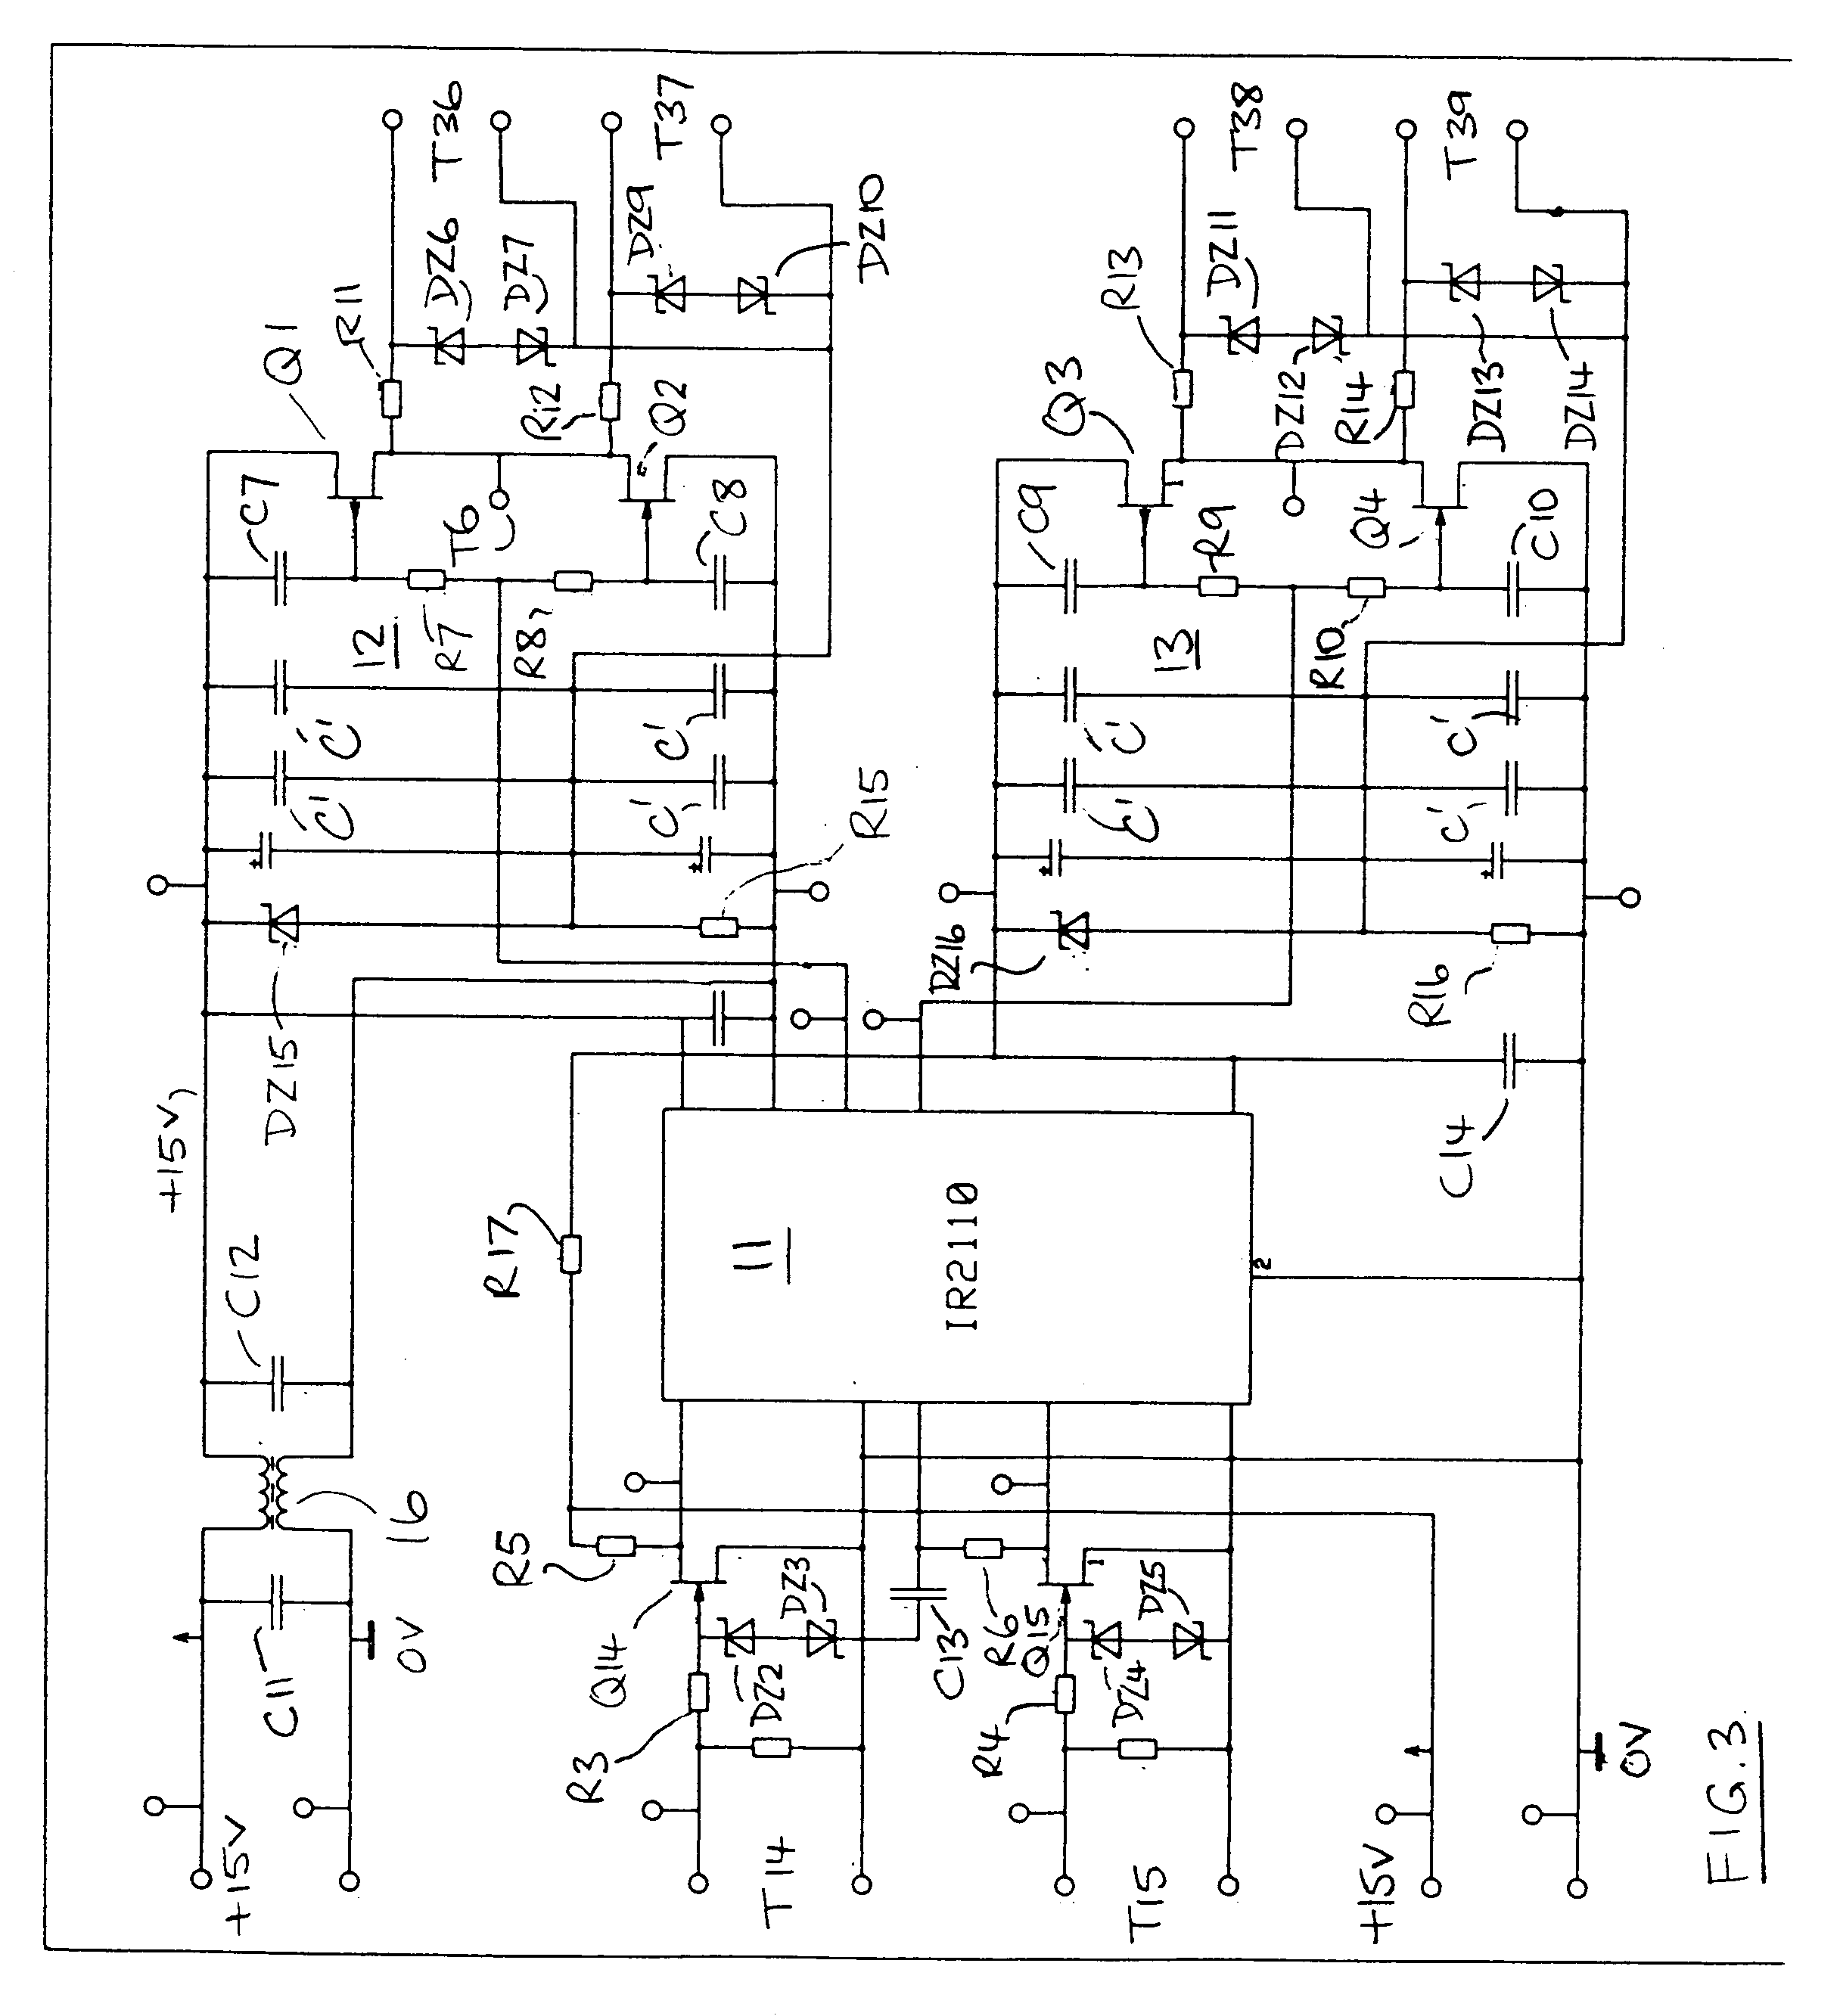 Component igbt circuit diagram testing patent ep0502715a1 power component igbt circuit diagram testing patent ep0502715a1 power ccuart Images